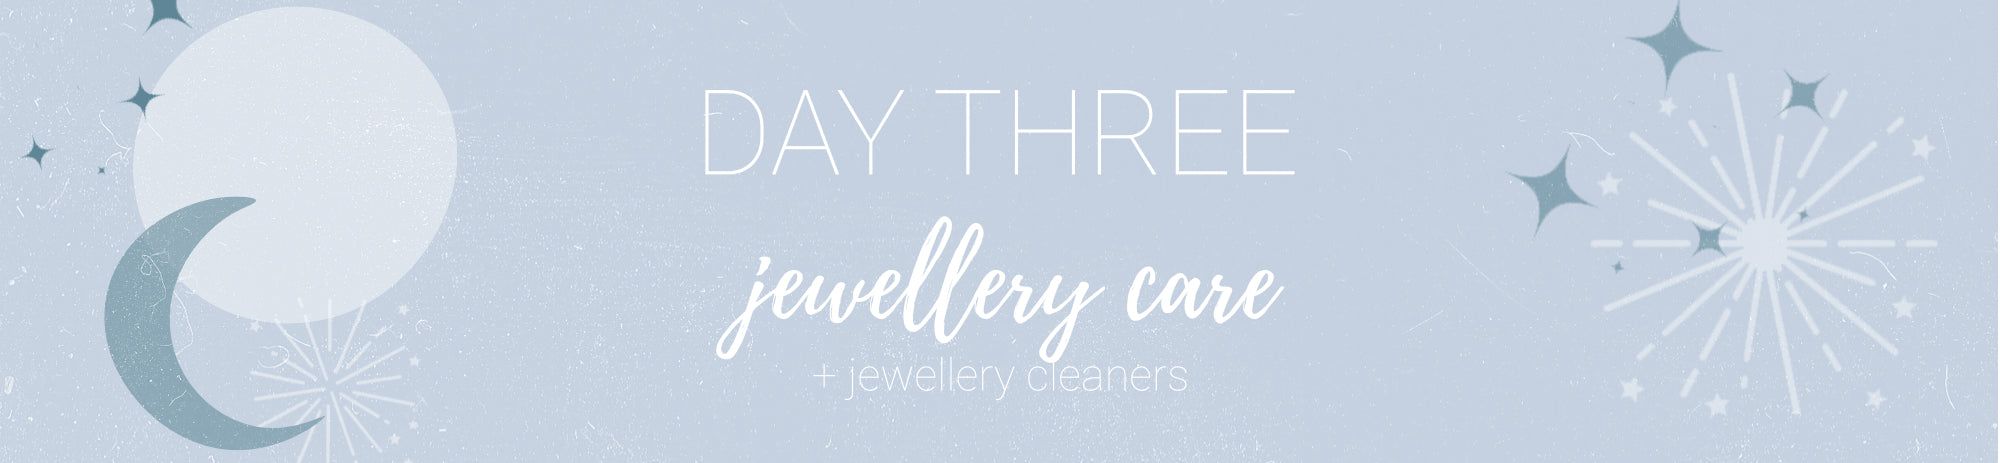 20% off Jewellery Care & Cleaning Products Use Code: CHEER3